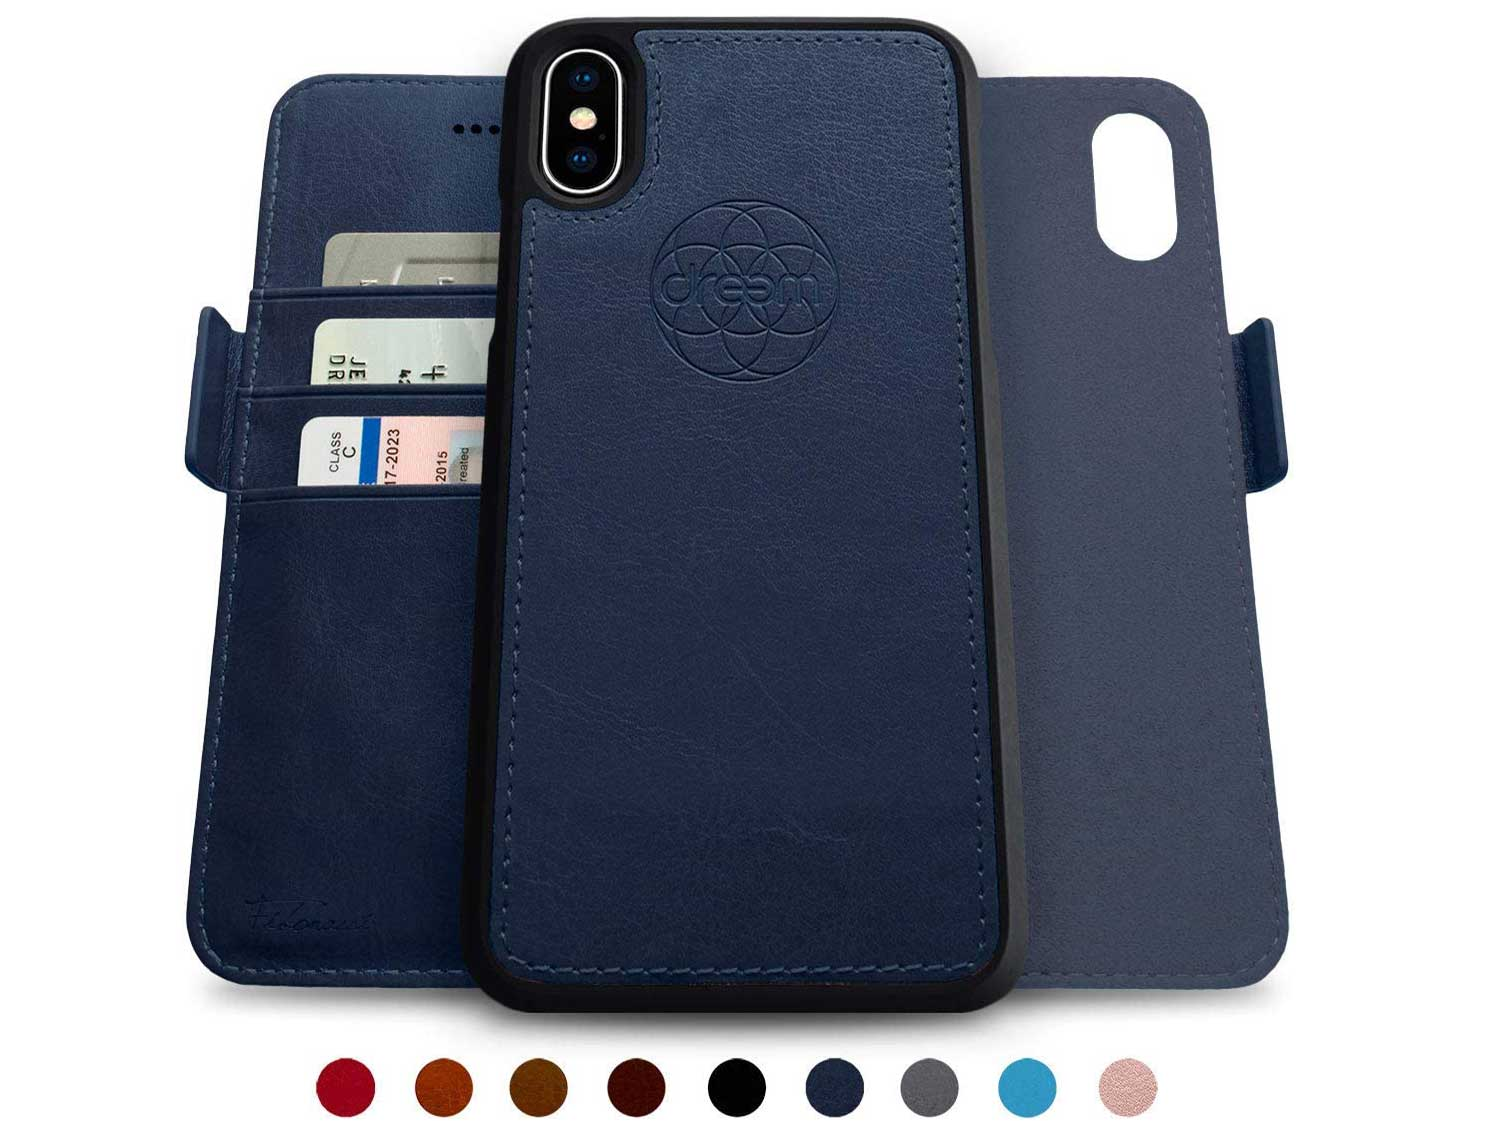 Dreem Fibonacci 2-in-1 Wallet-Case for iPhone X & Xs, Magnetic Detachable Shock-Proof TPU Slim-Case, RFID Protection, 2-Way Stand, Luxury Vegan Leather, Gift-Box - Royal